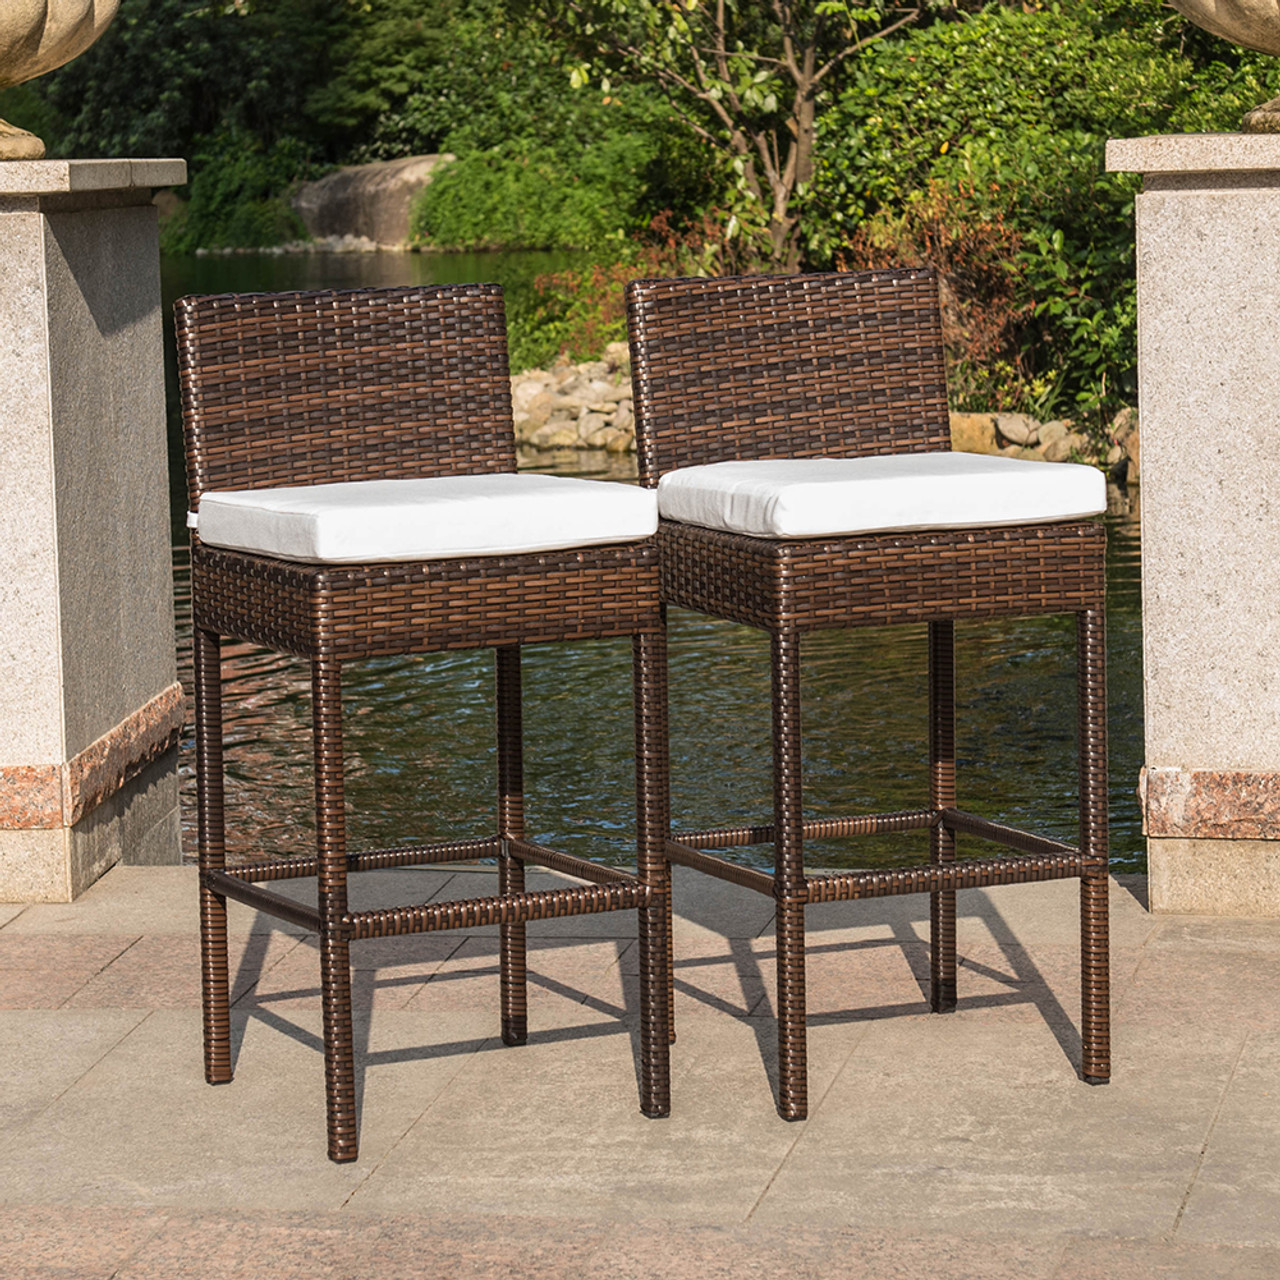 patio garden wicker swivel bar stool with cushion and throw pillow